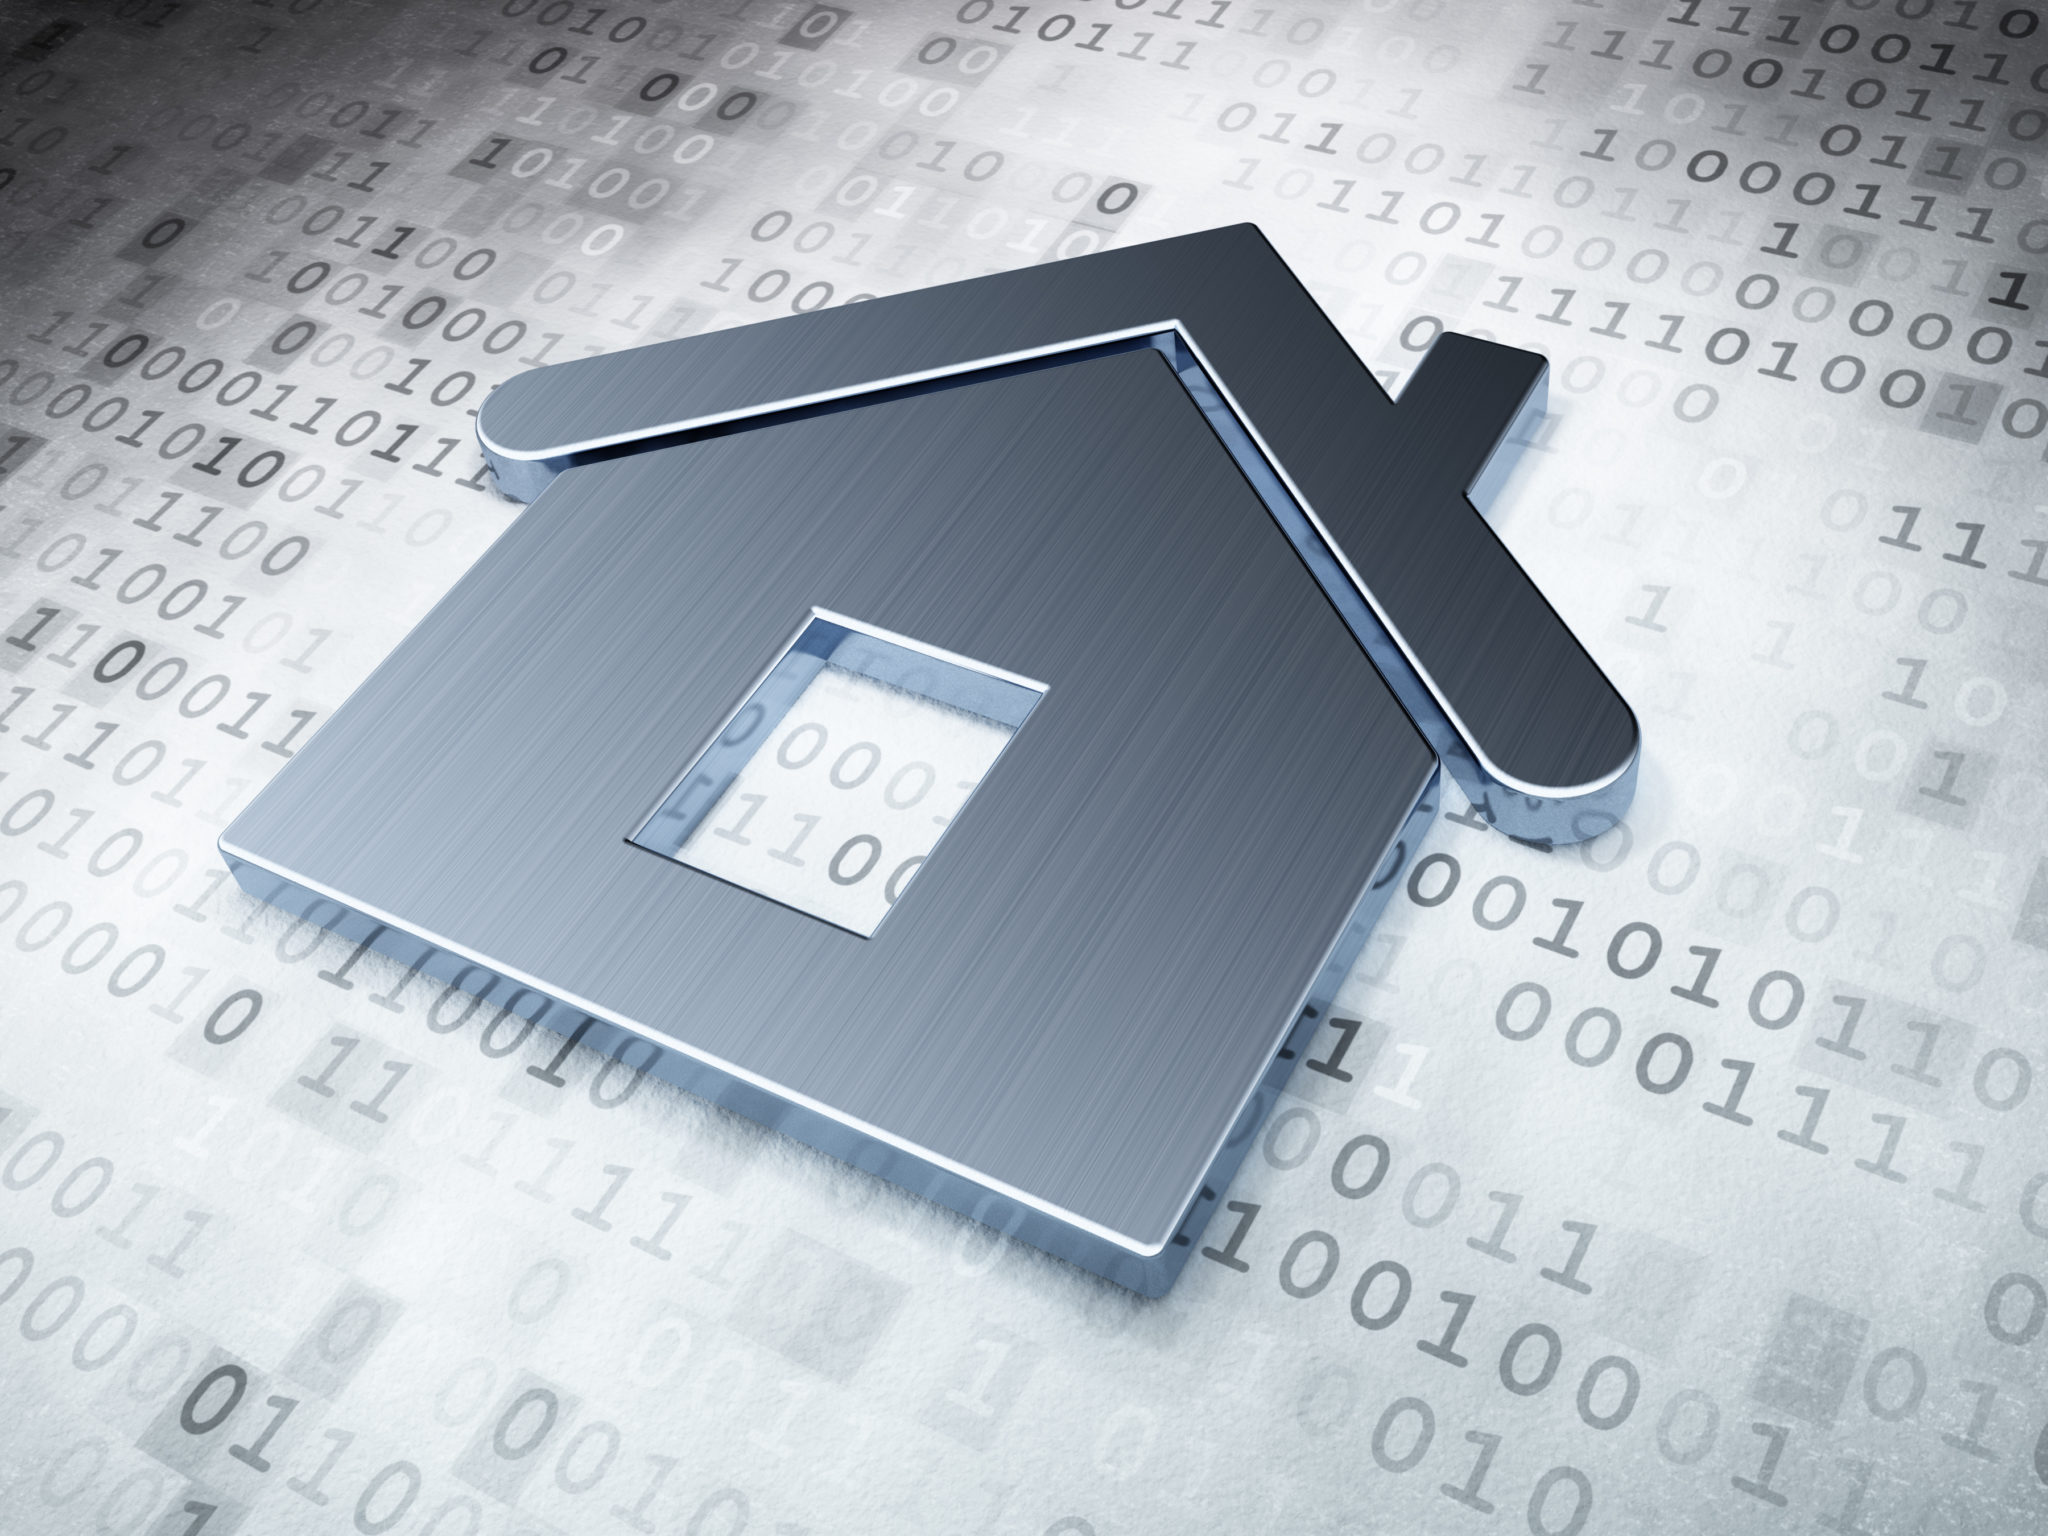 Realtor-affiliated MLSs must furnish listing data for broker AVMs